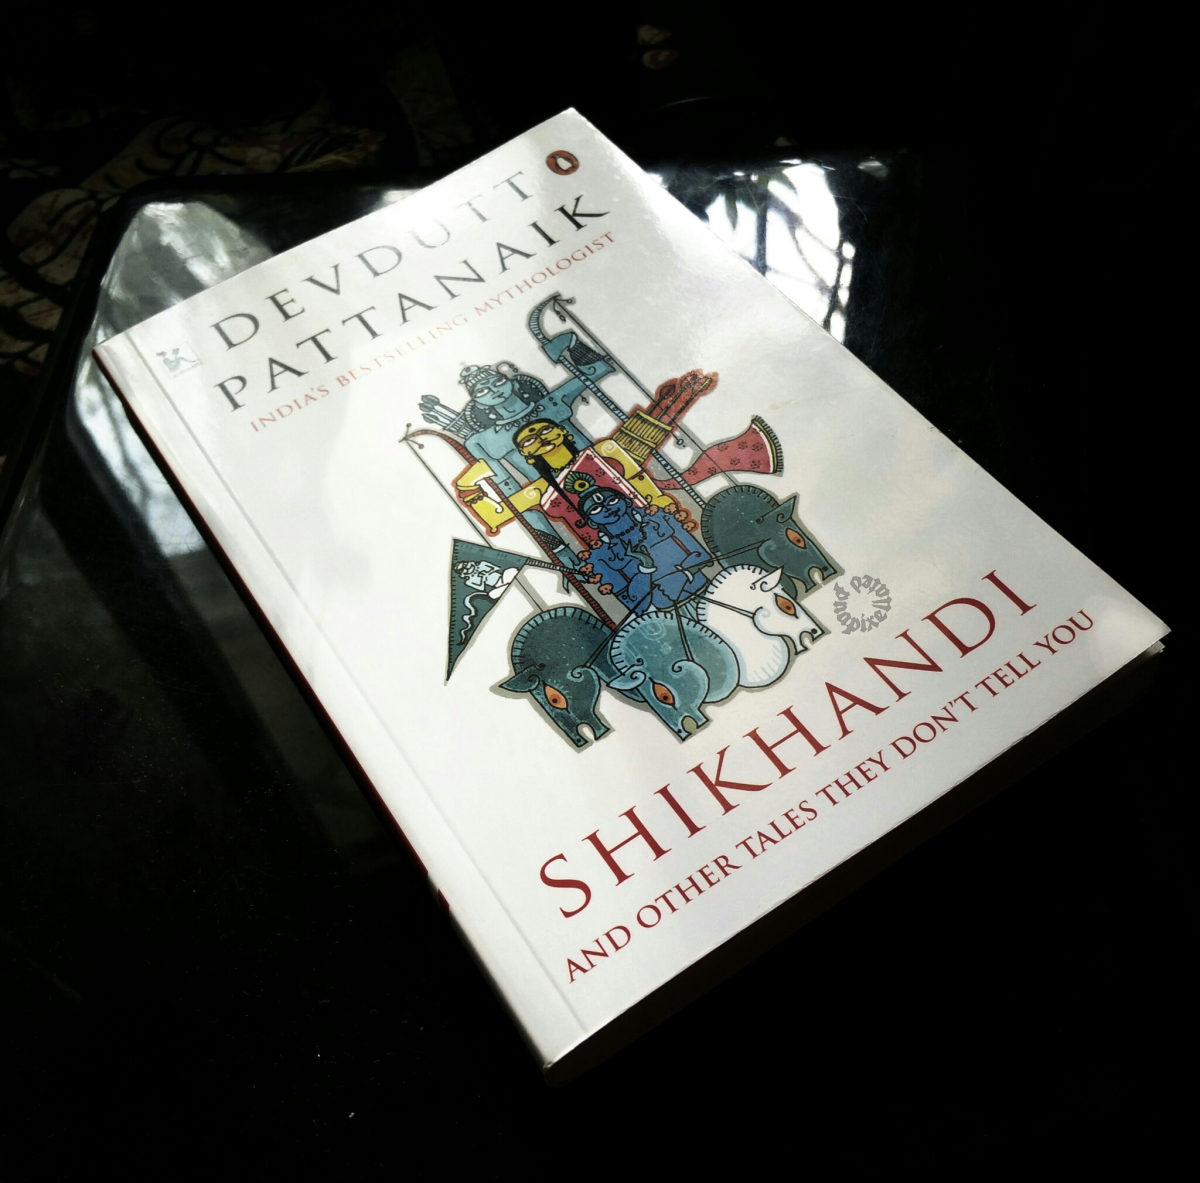 Review: Shikhandi And Other Tales They Don't Tell You By Devdutt Pattanaik